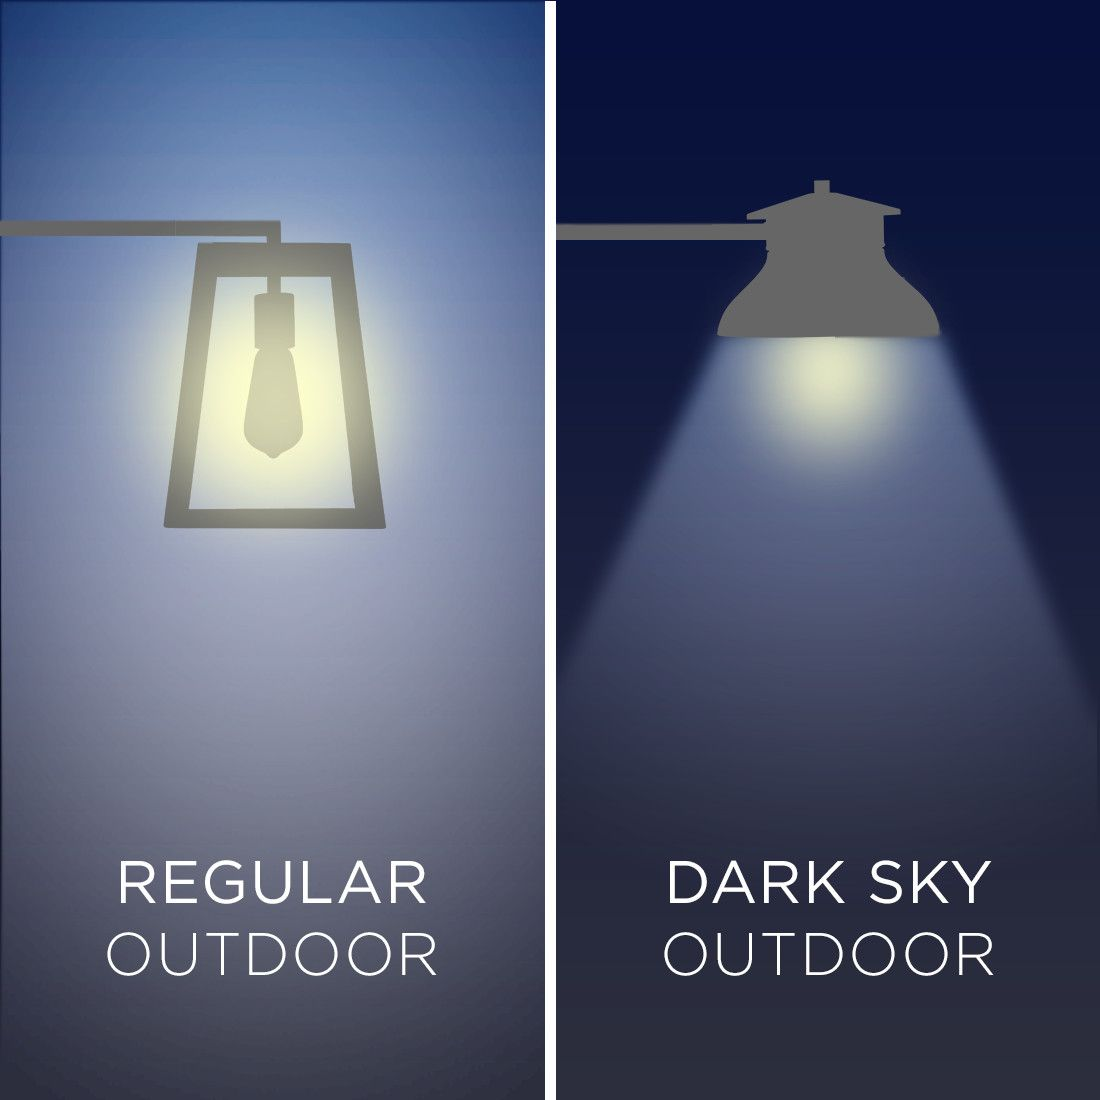 Ideas Advice Lamps Plus Read Our Latest Blog Posts Explore Helpful How To Articles Tips And More Here At The Lamp Plus Info Center Outdoor Post Lights Dark Sky